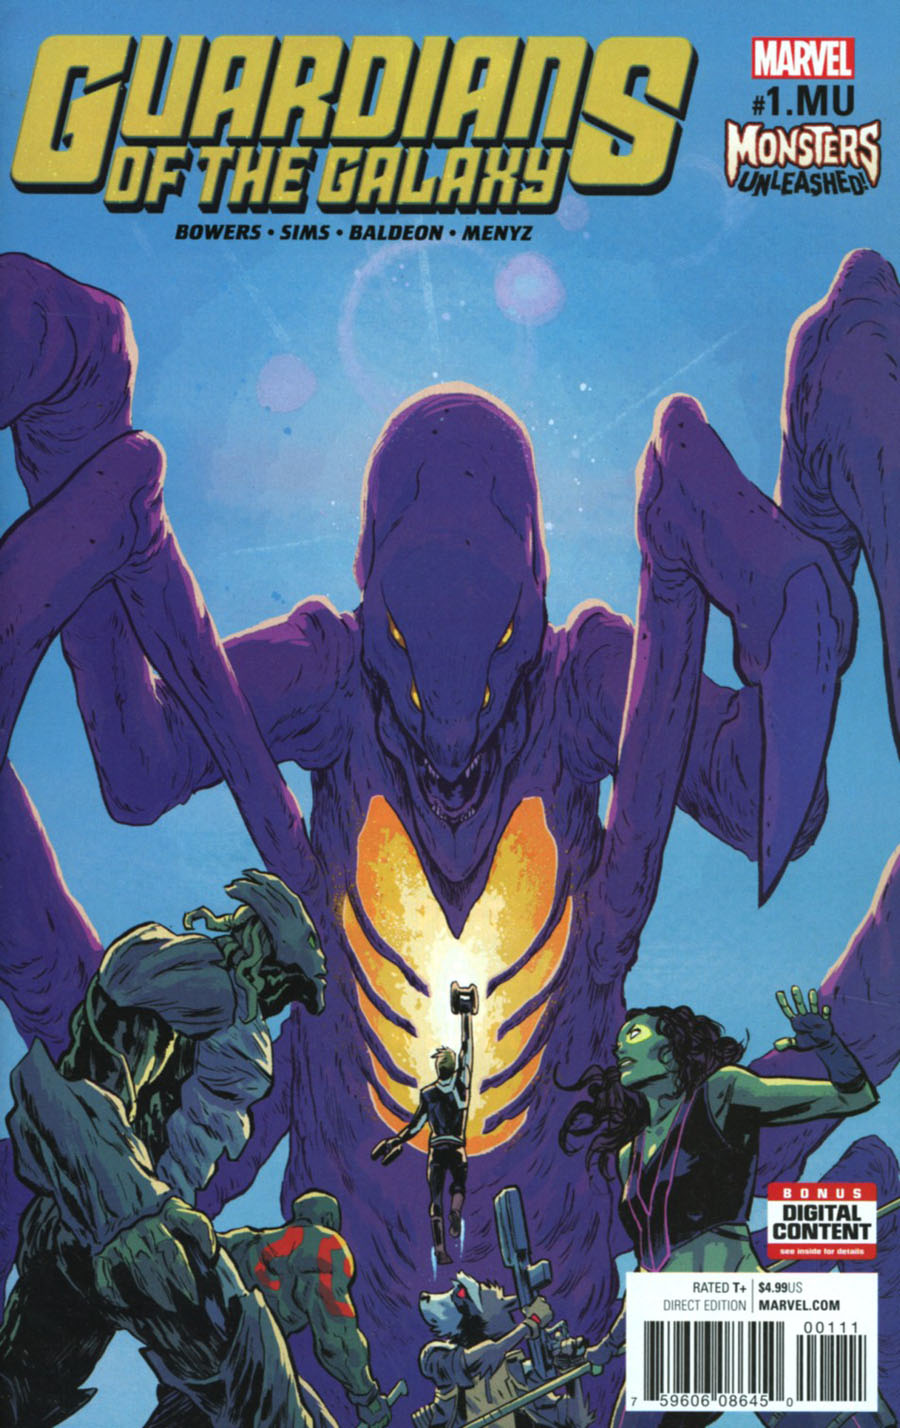 Guardians Of The Galaxy Vol 4 #1.MU Cover A Regular Michael Walsh Cover (Monsters Unleashed Tie-In)